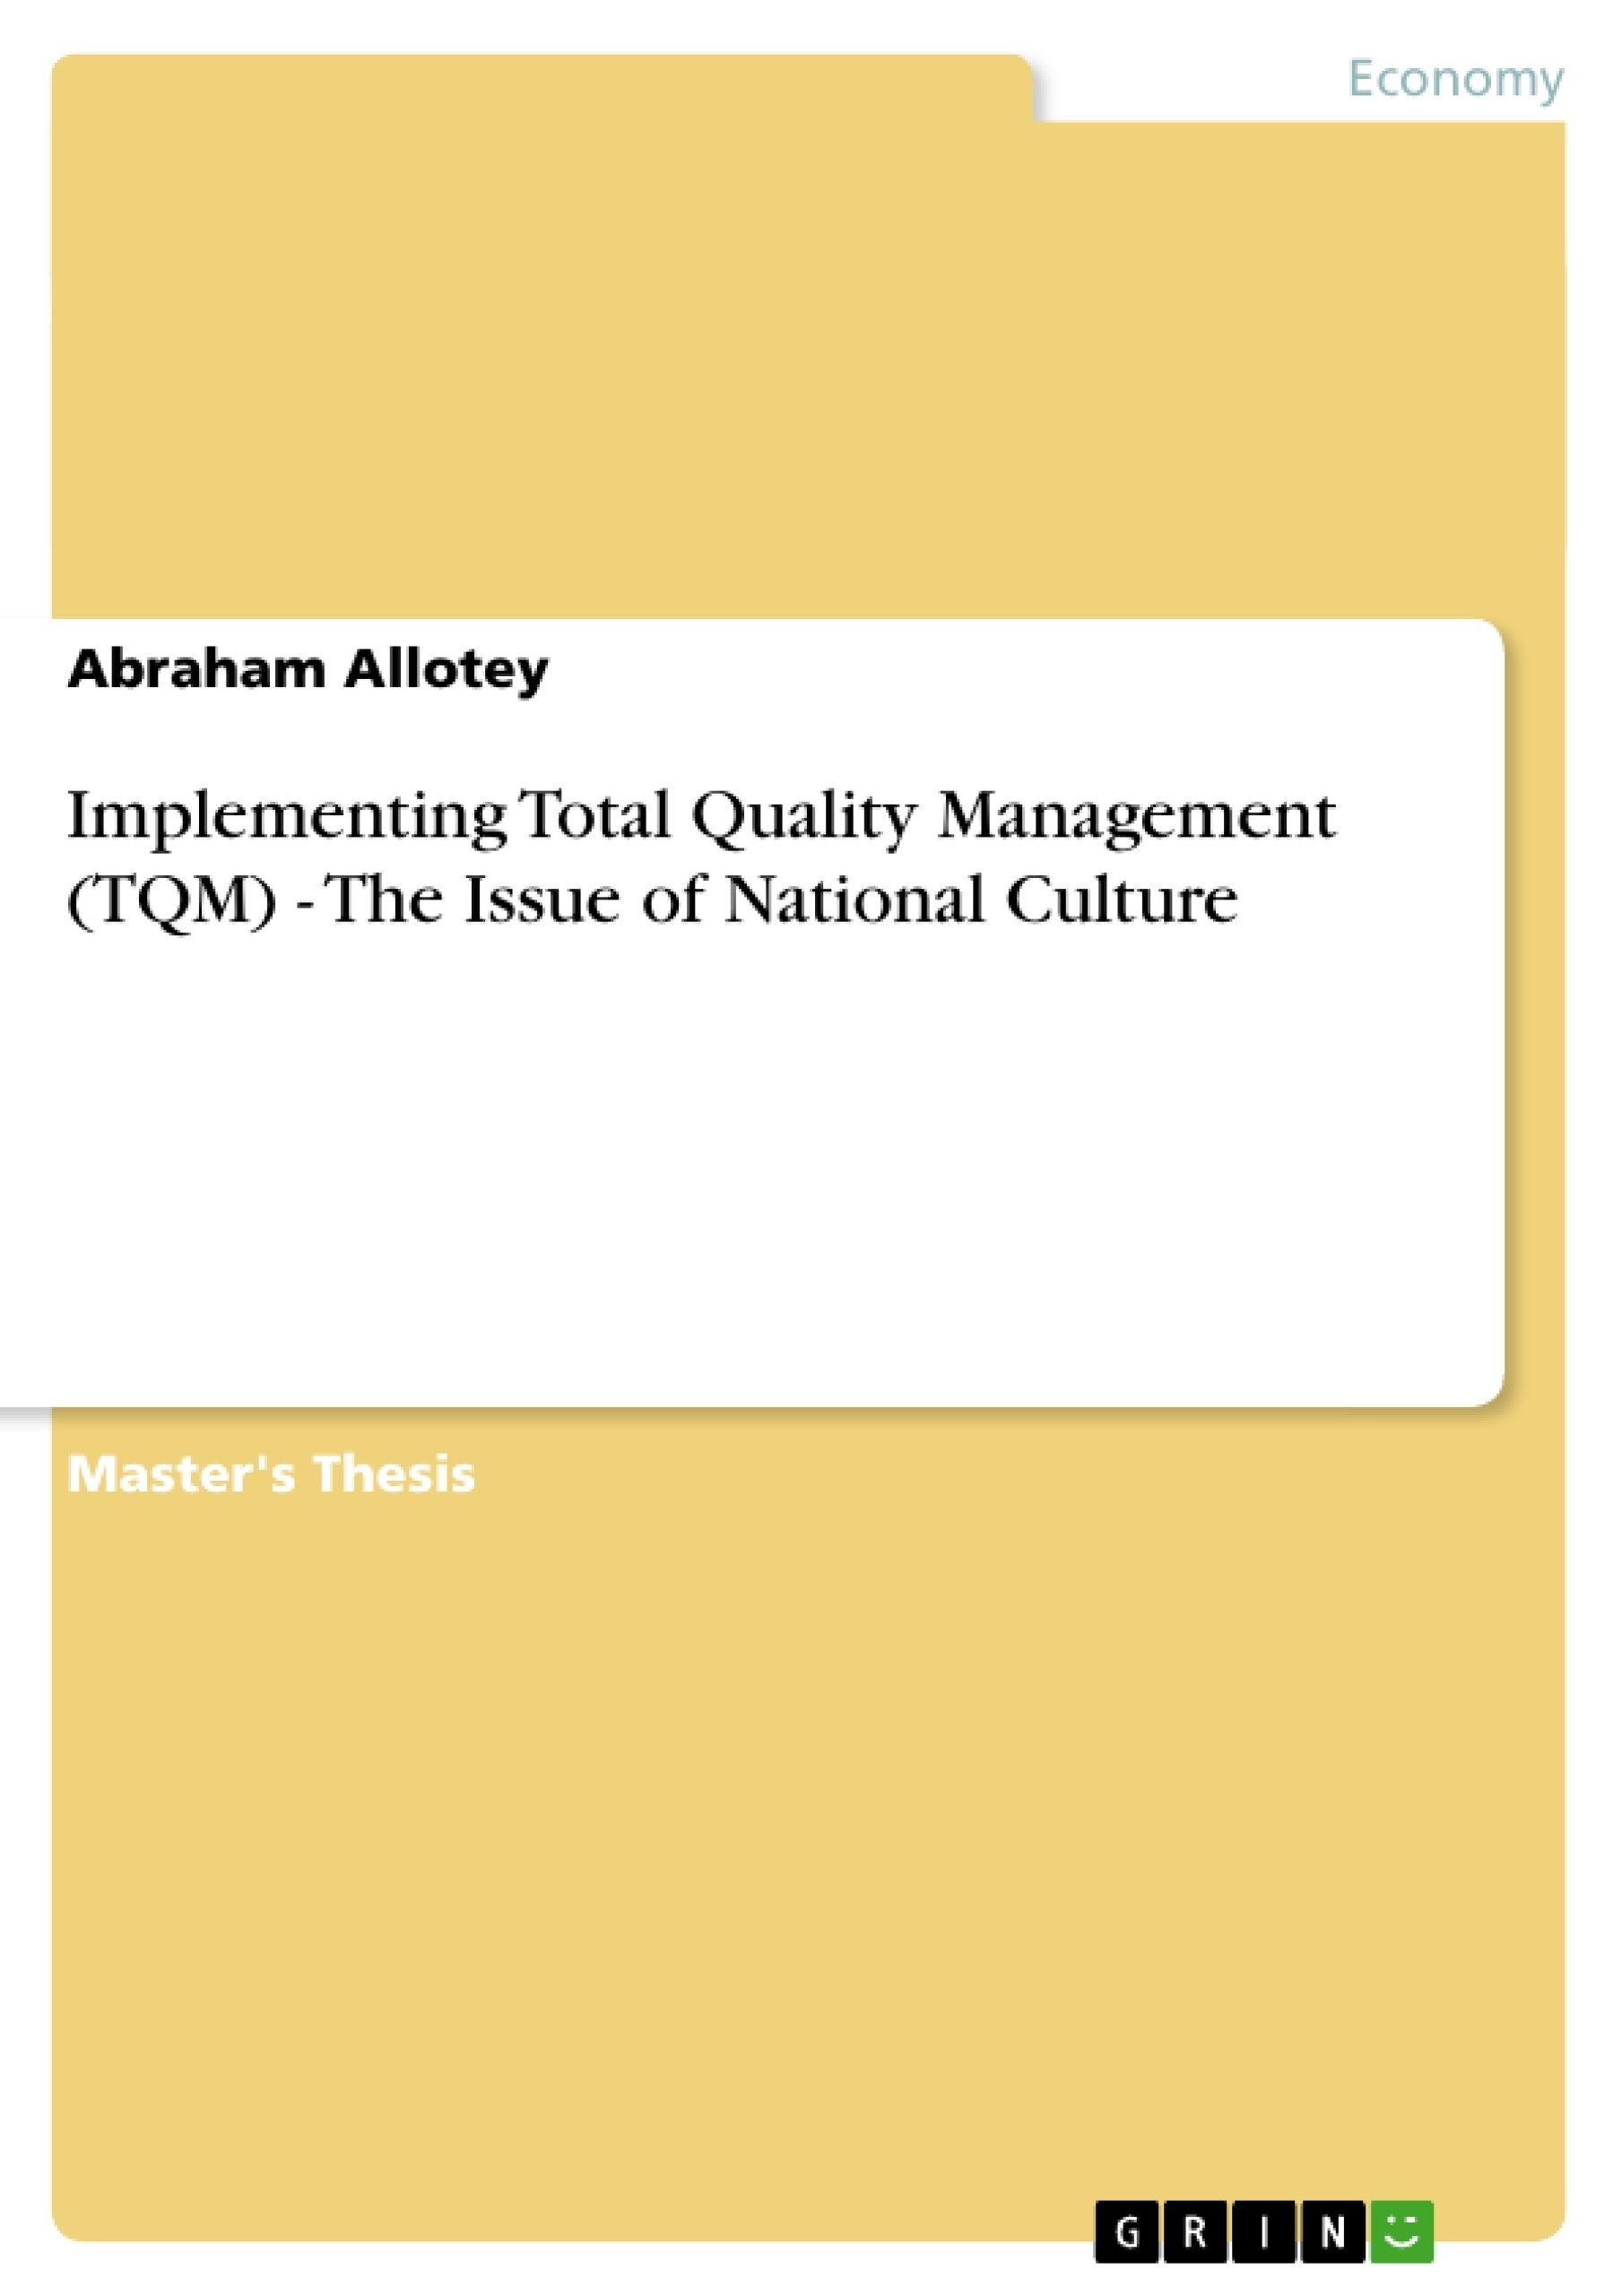 Title: Implementing Total Quality Management (TQM) - The Issue of National Culture